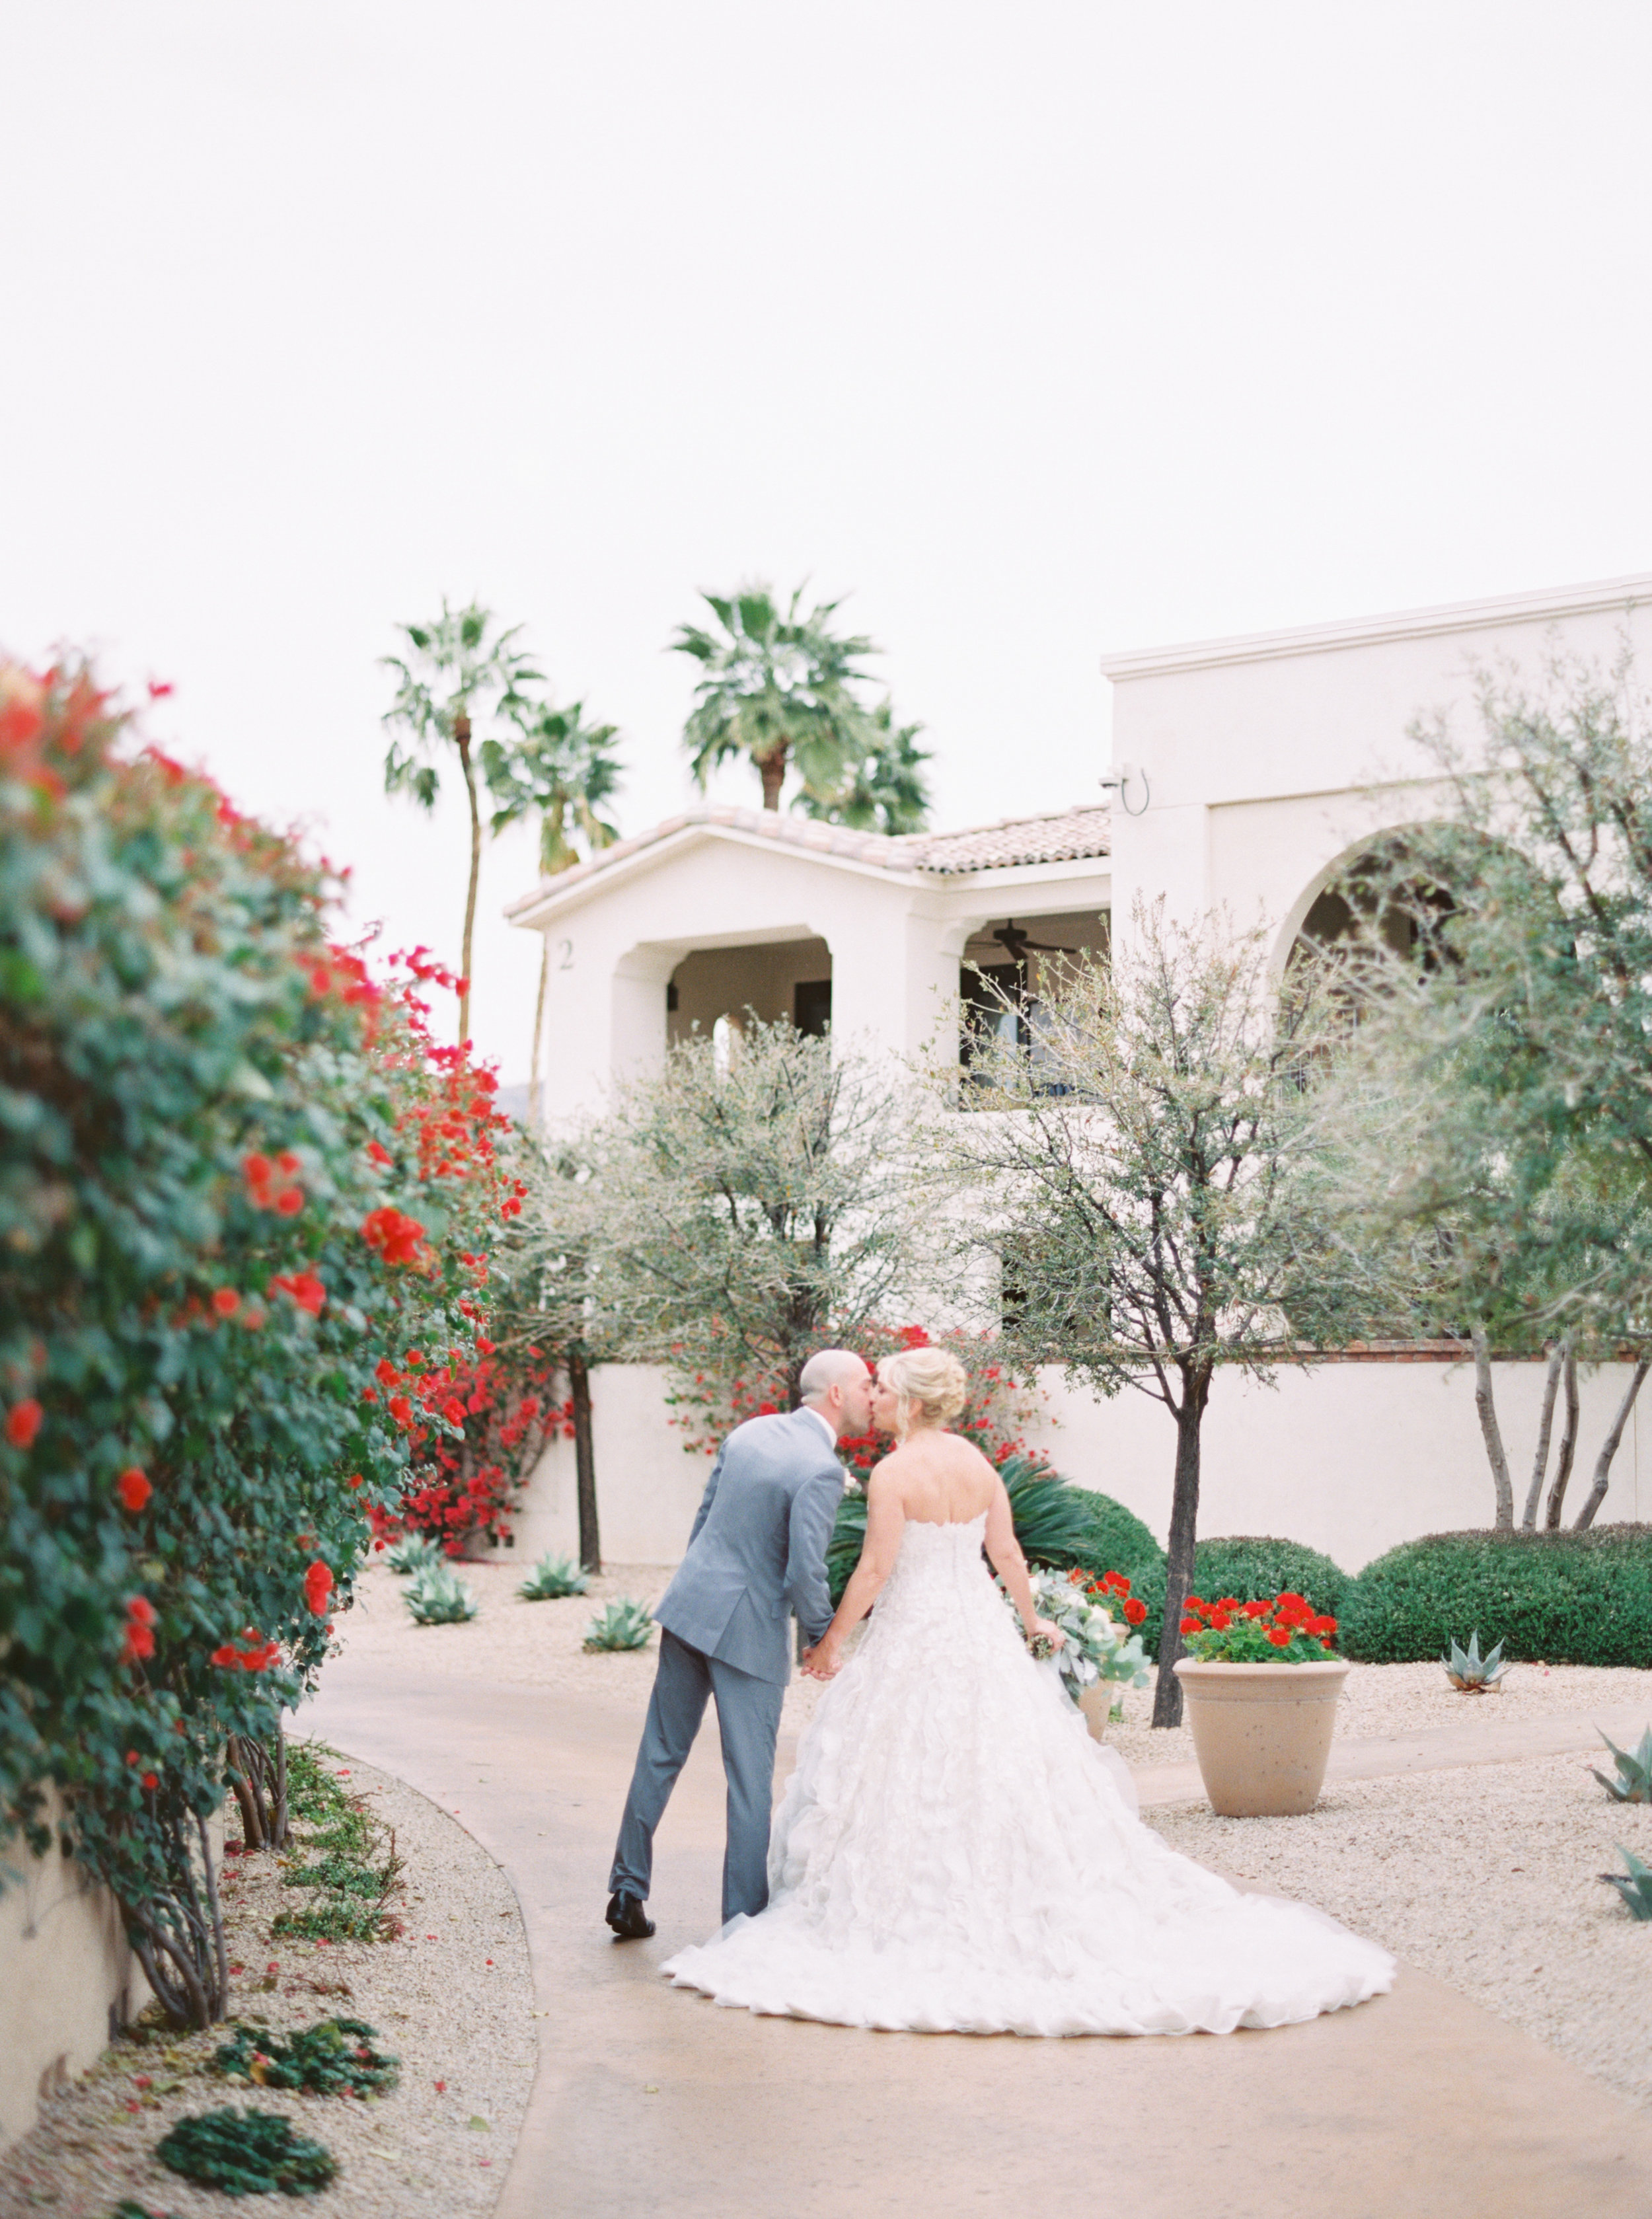 19 bride groom kiss first look photos before ceremony resort wedding photos wedding portraits couple photo session Life Design Events photos by Melissa Jill Photography.jpg